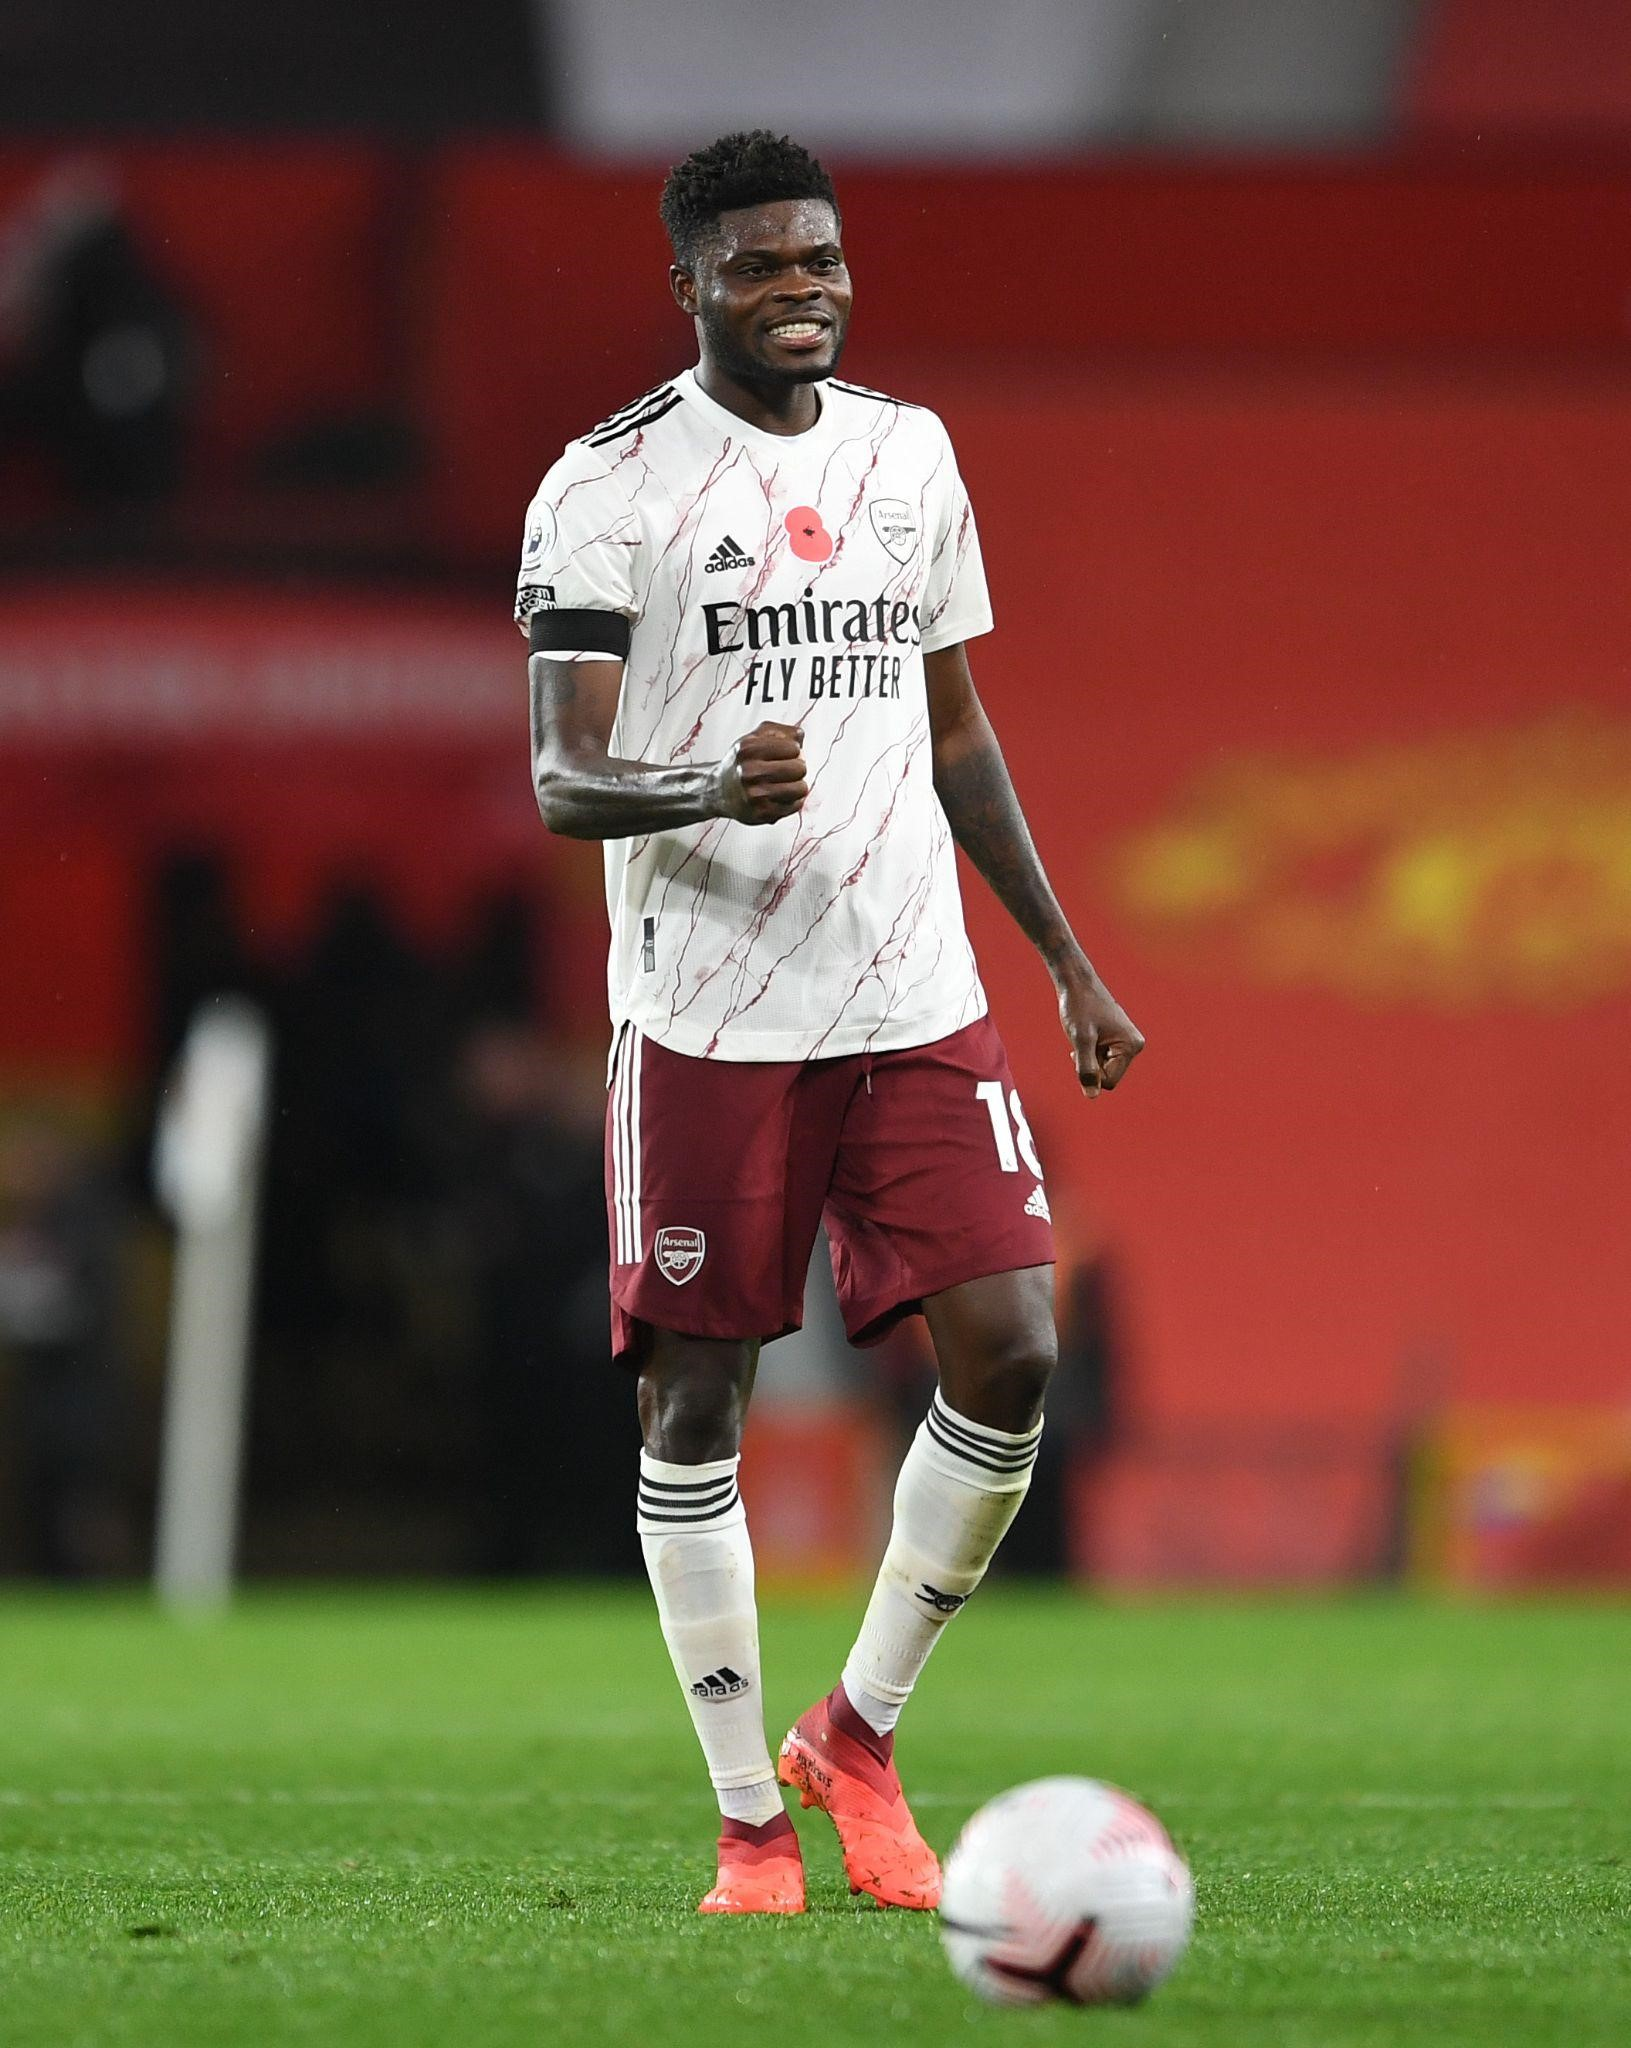 Ghana midfielder Thomas Partey aiming to stay fit to make impact at Arsenal